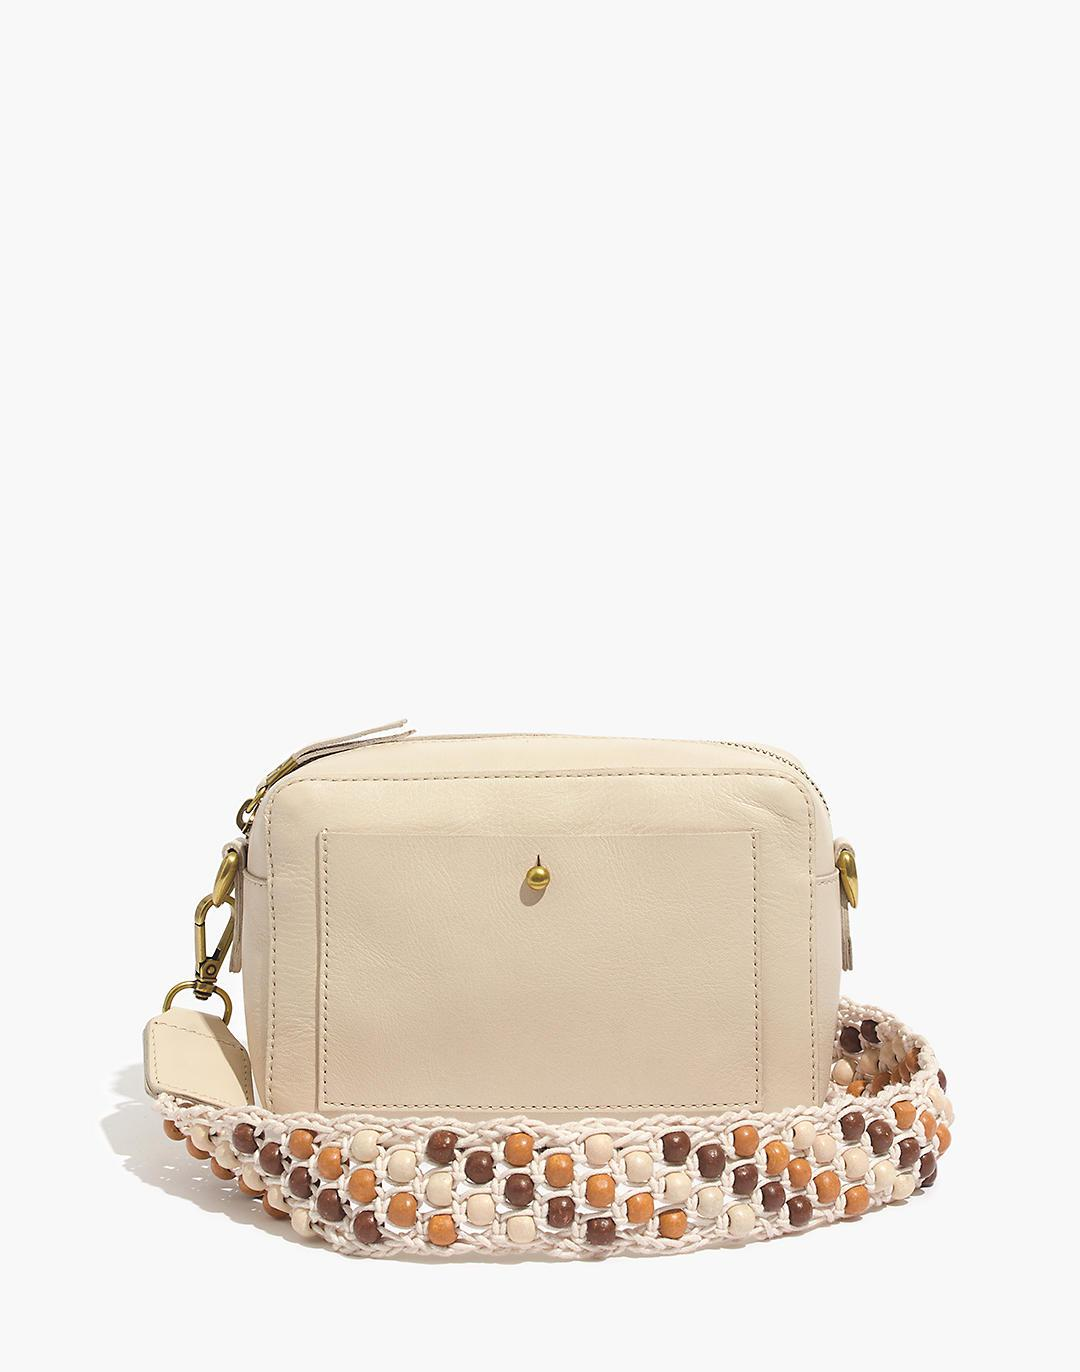 The Transport Camera Bag: Beaded Strap Edition